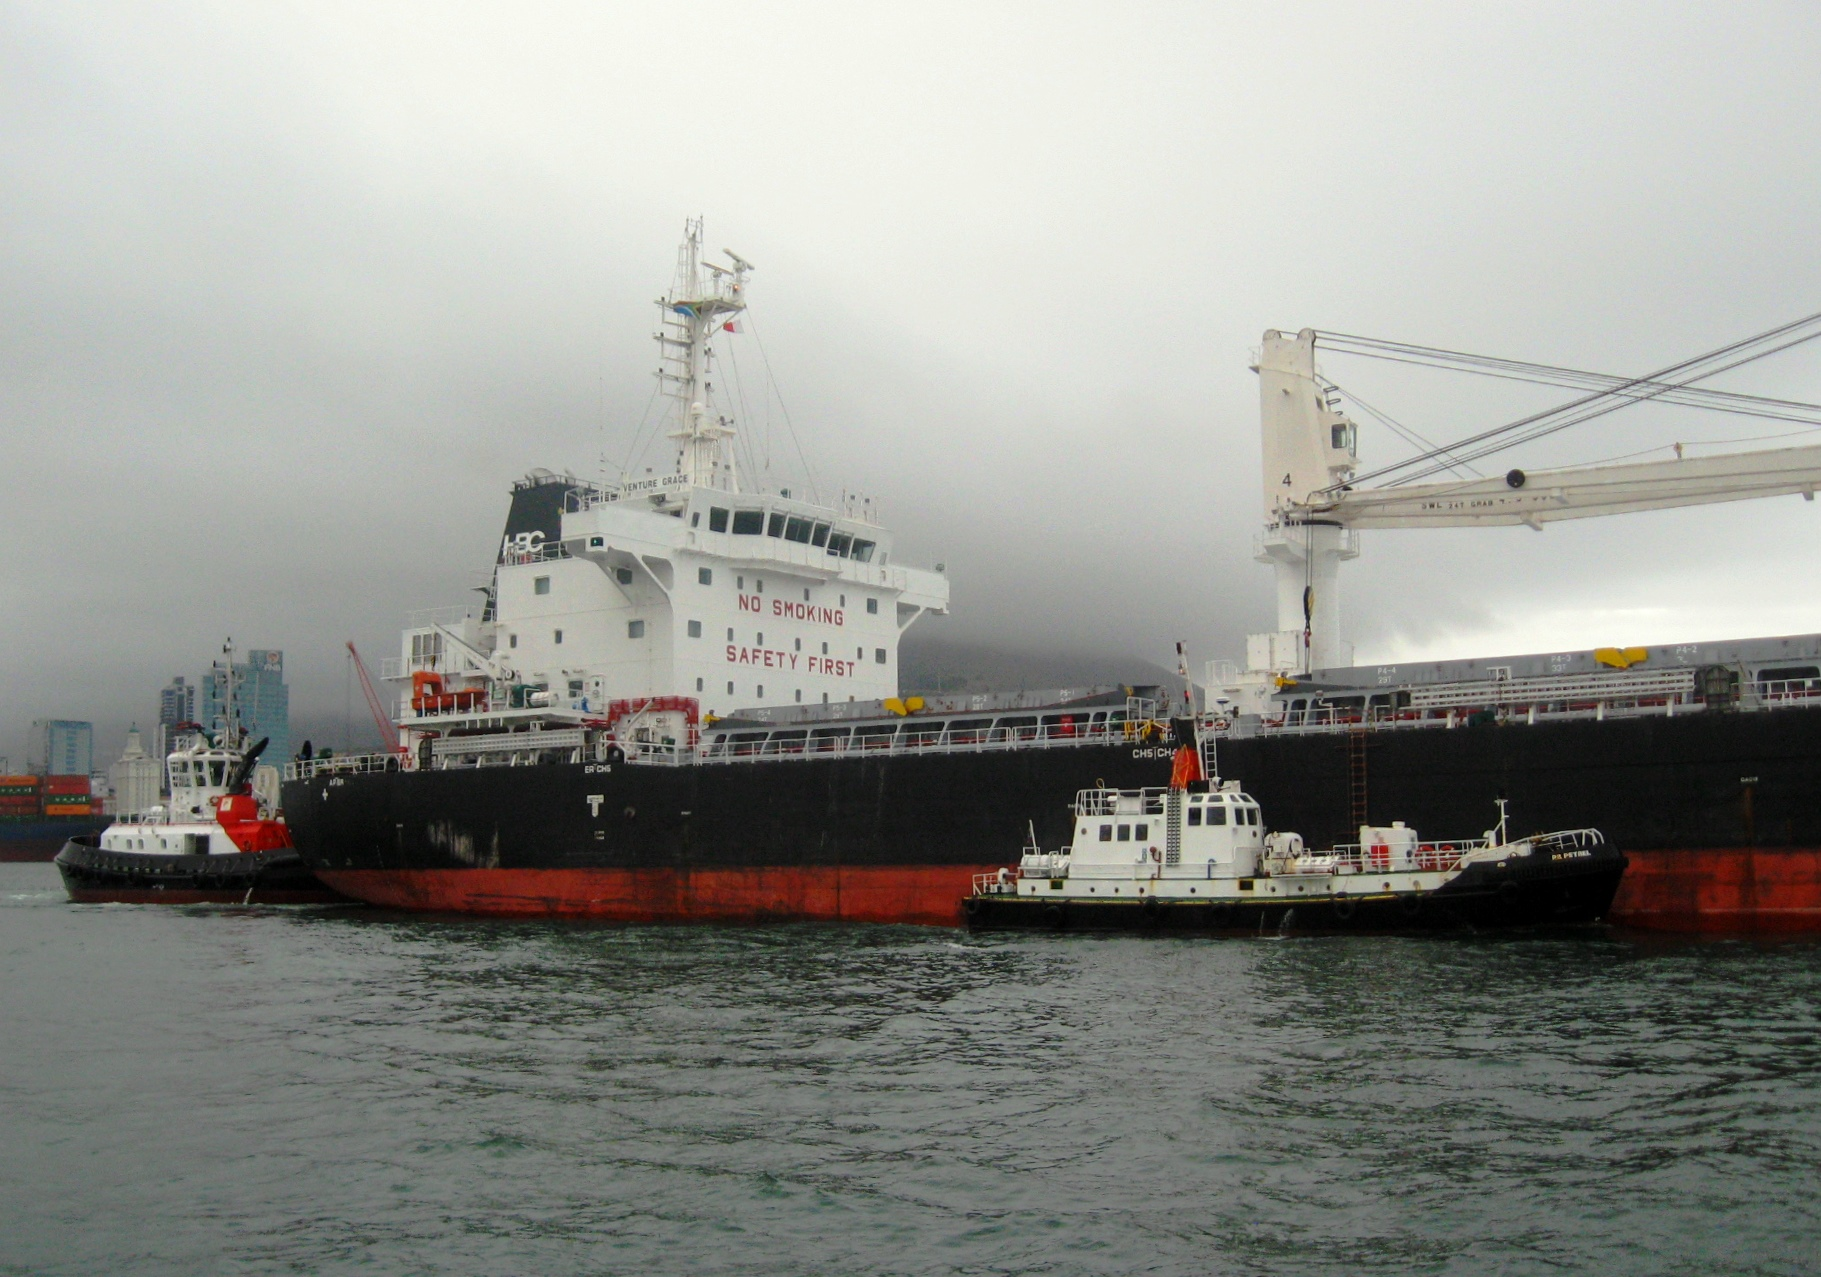 With a couple of harbour tugs busying themselves around the bulker, Venture Grace aims towards the harbour entrance an the open sae. Picture by 'Dockrat'